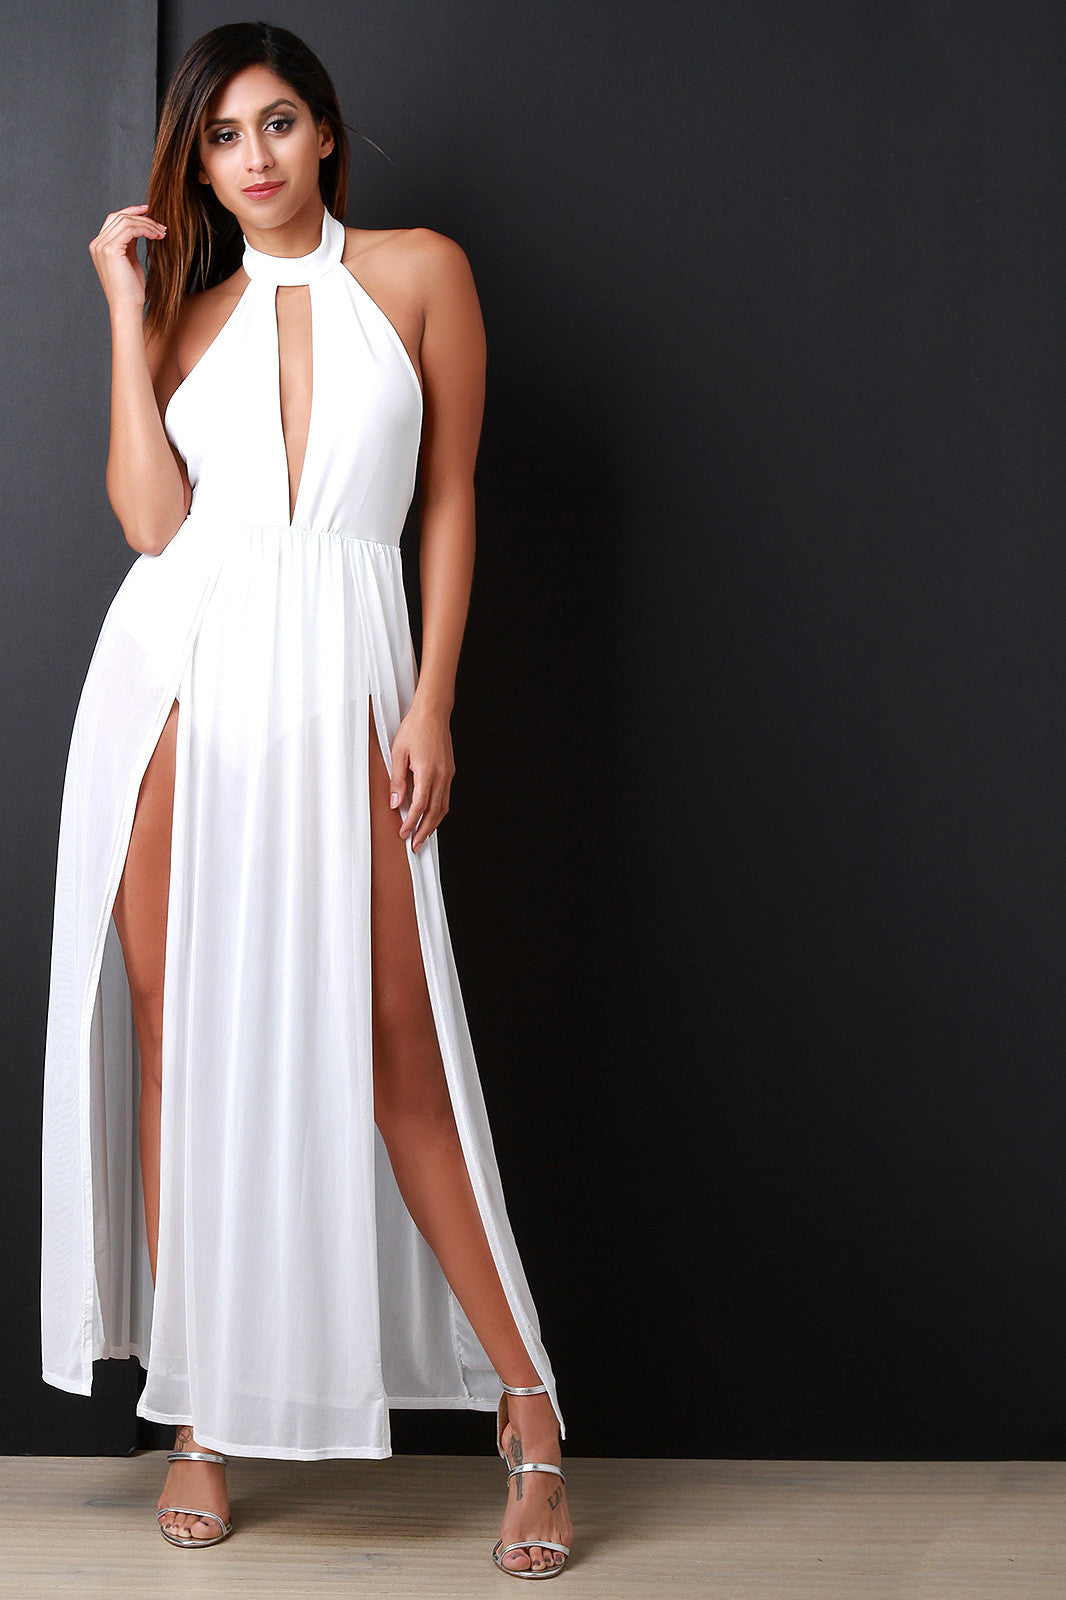 Bare Back Contrast Mesh Maxi Dress - Thick 'N' Curvy Shop - 2